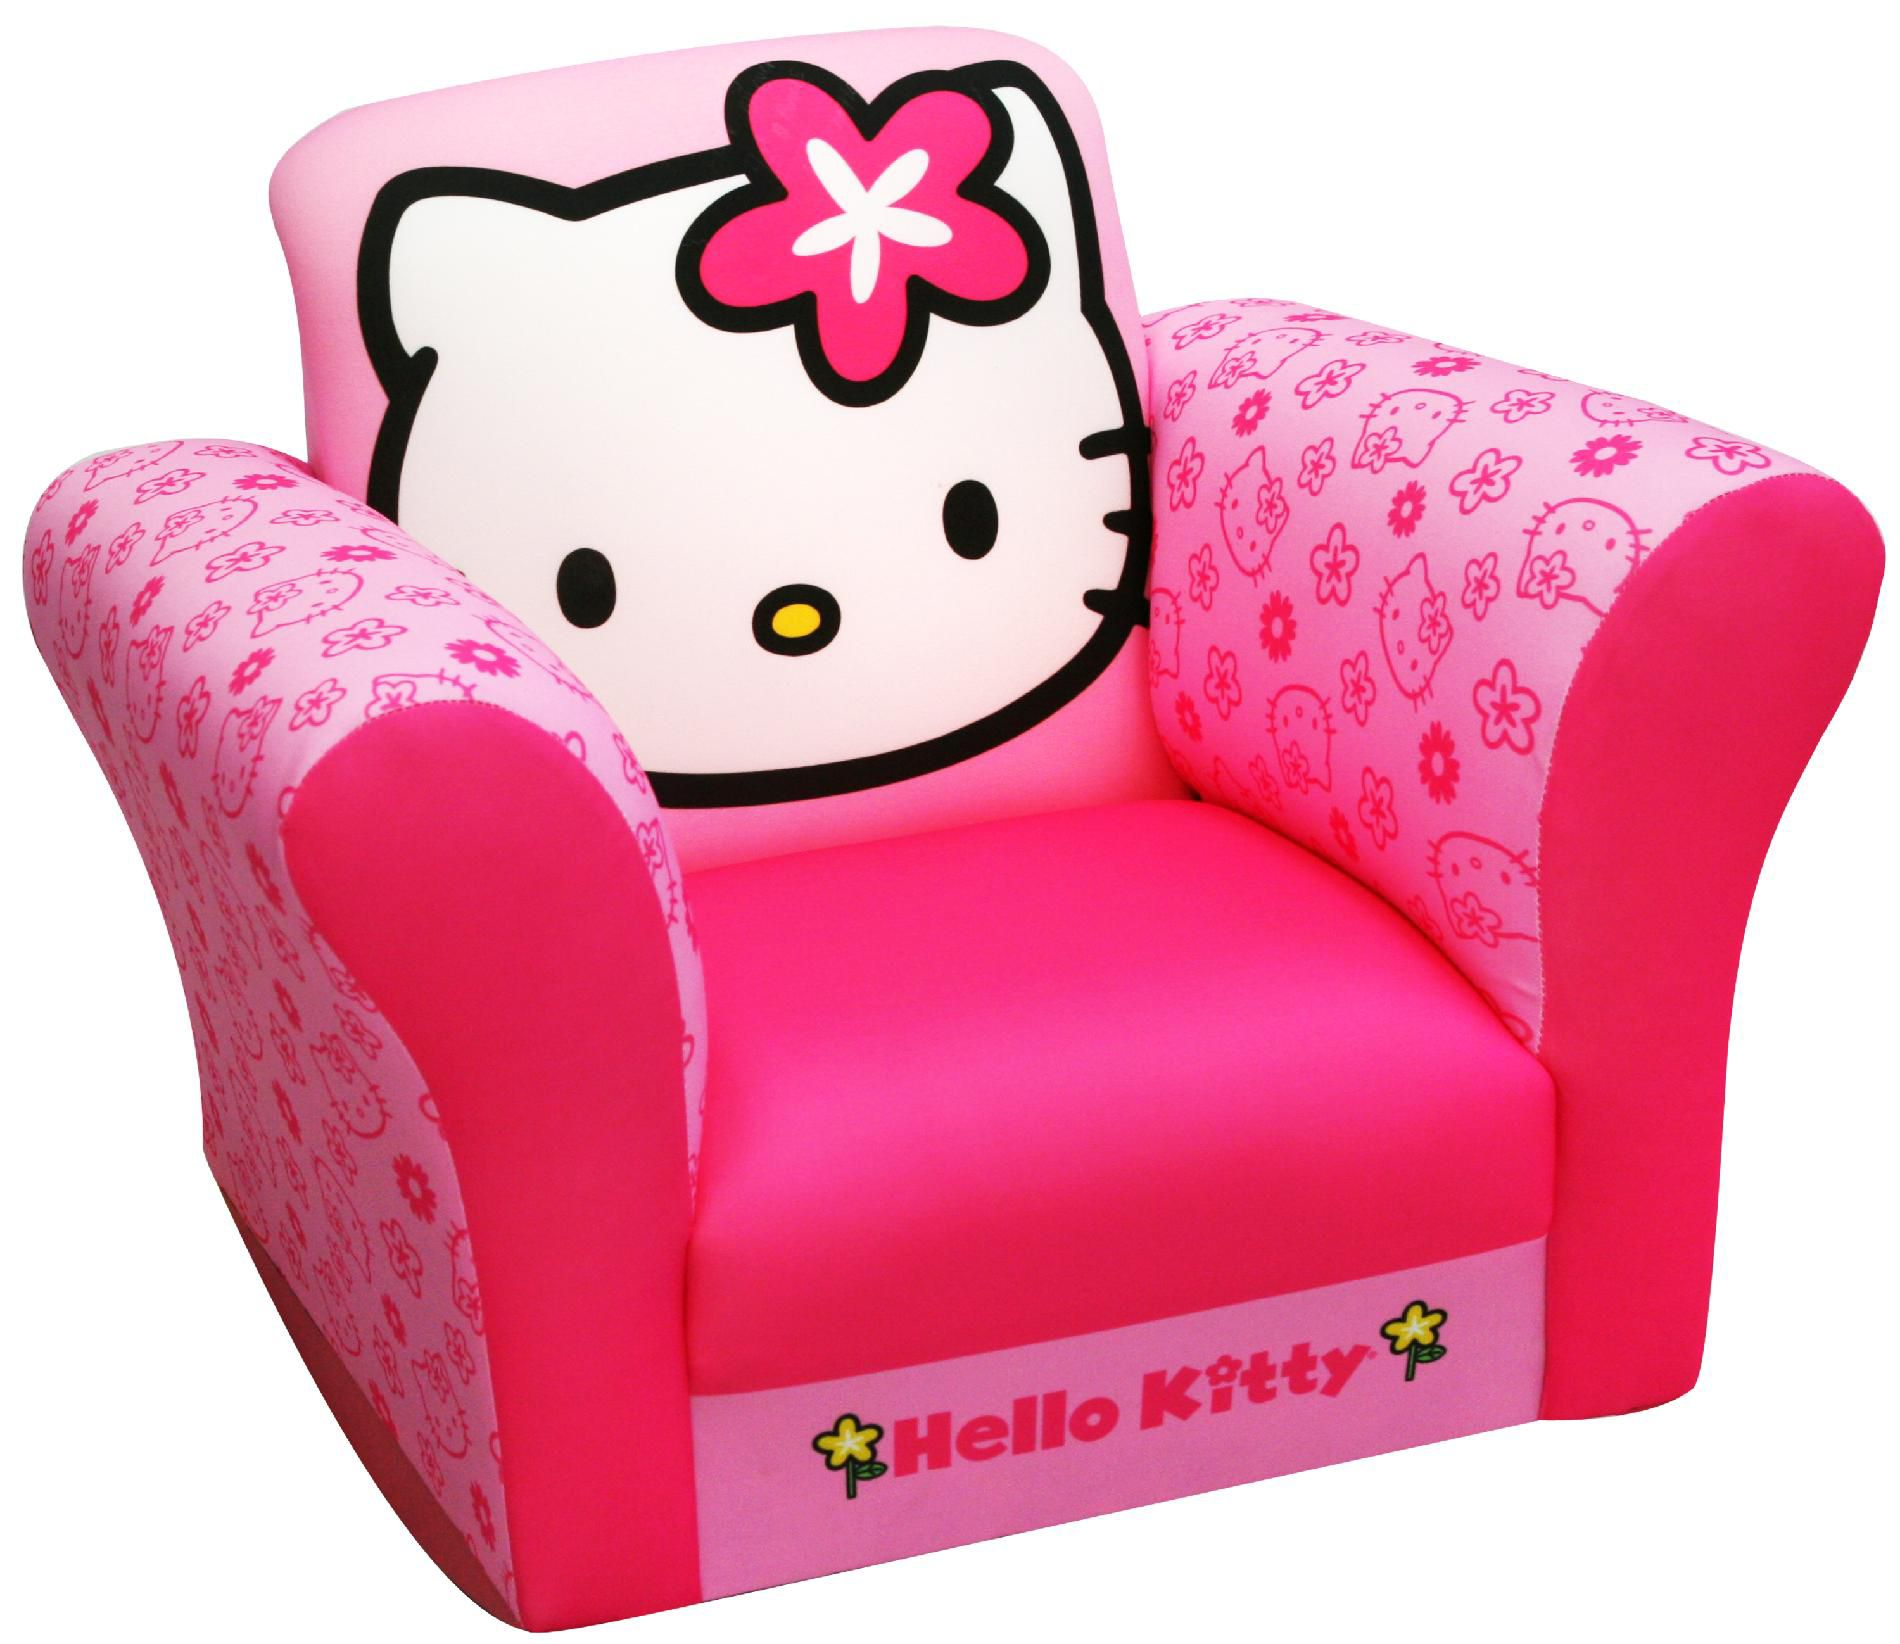 Toddler Furniture: Shop Chairs for Kids'' Rooms at Kmart.